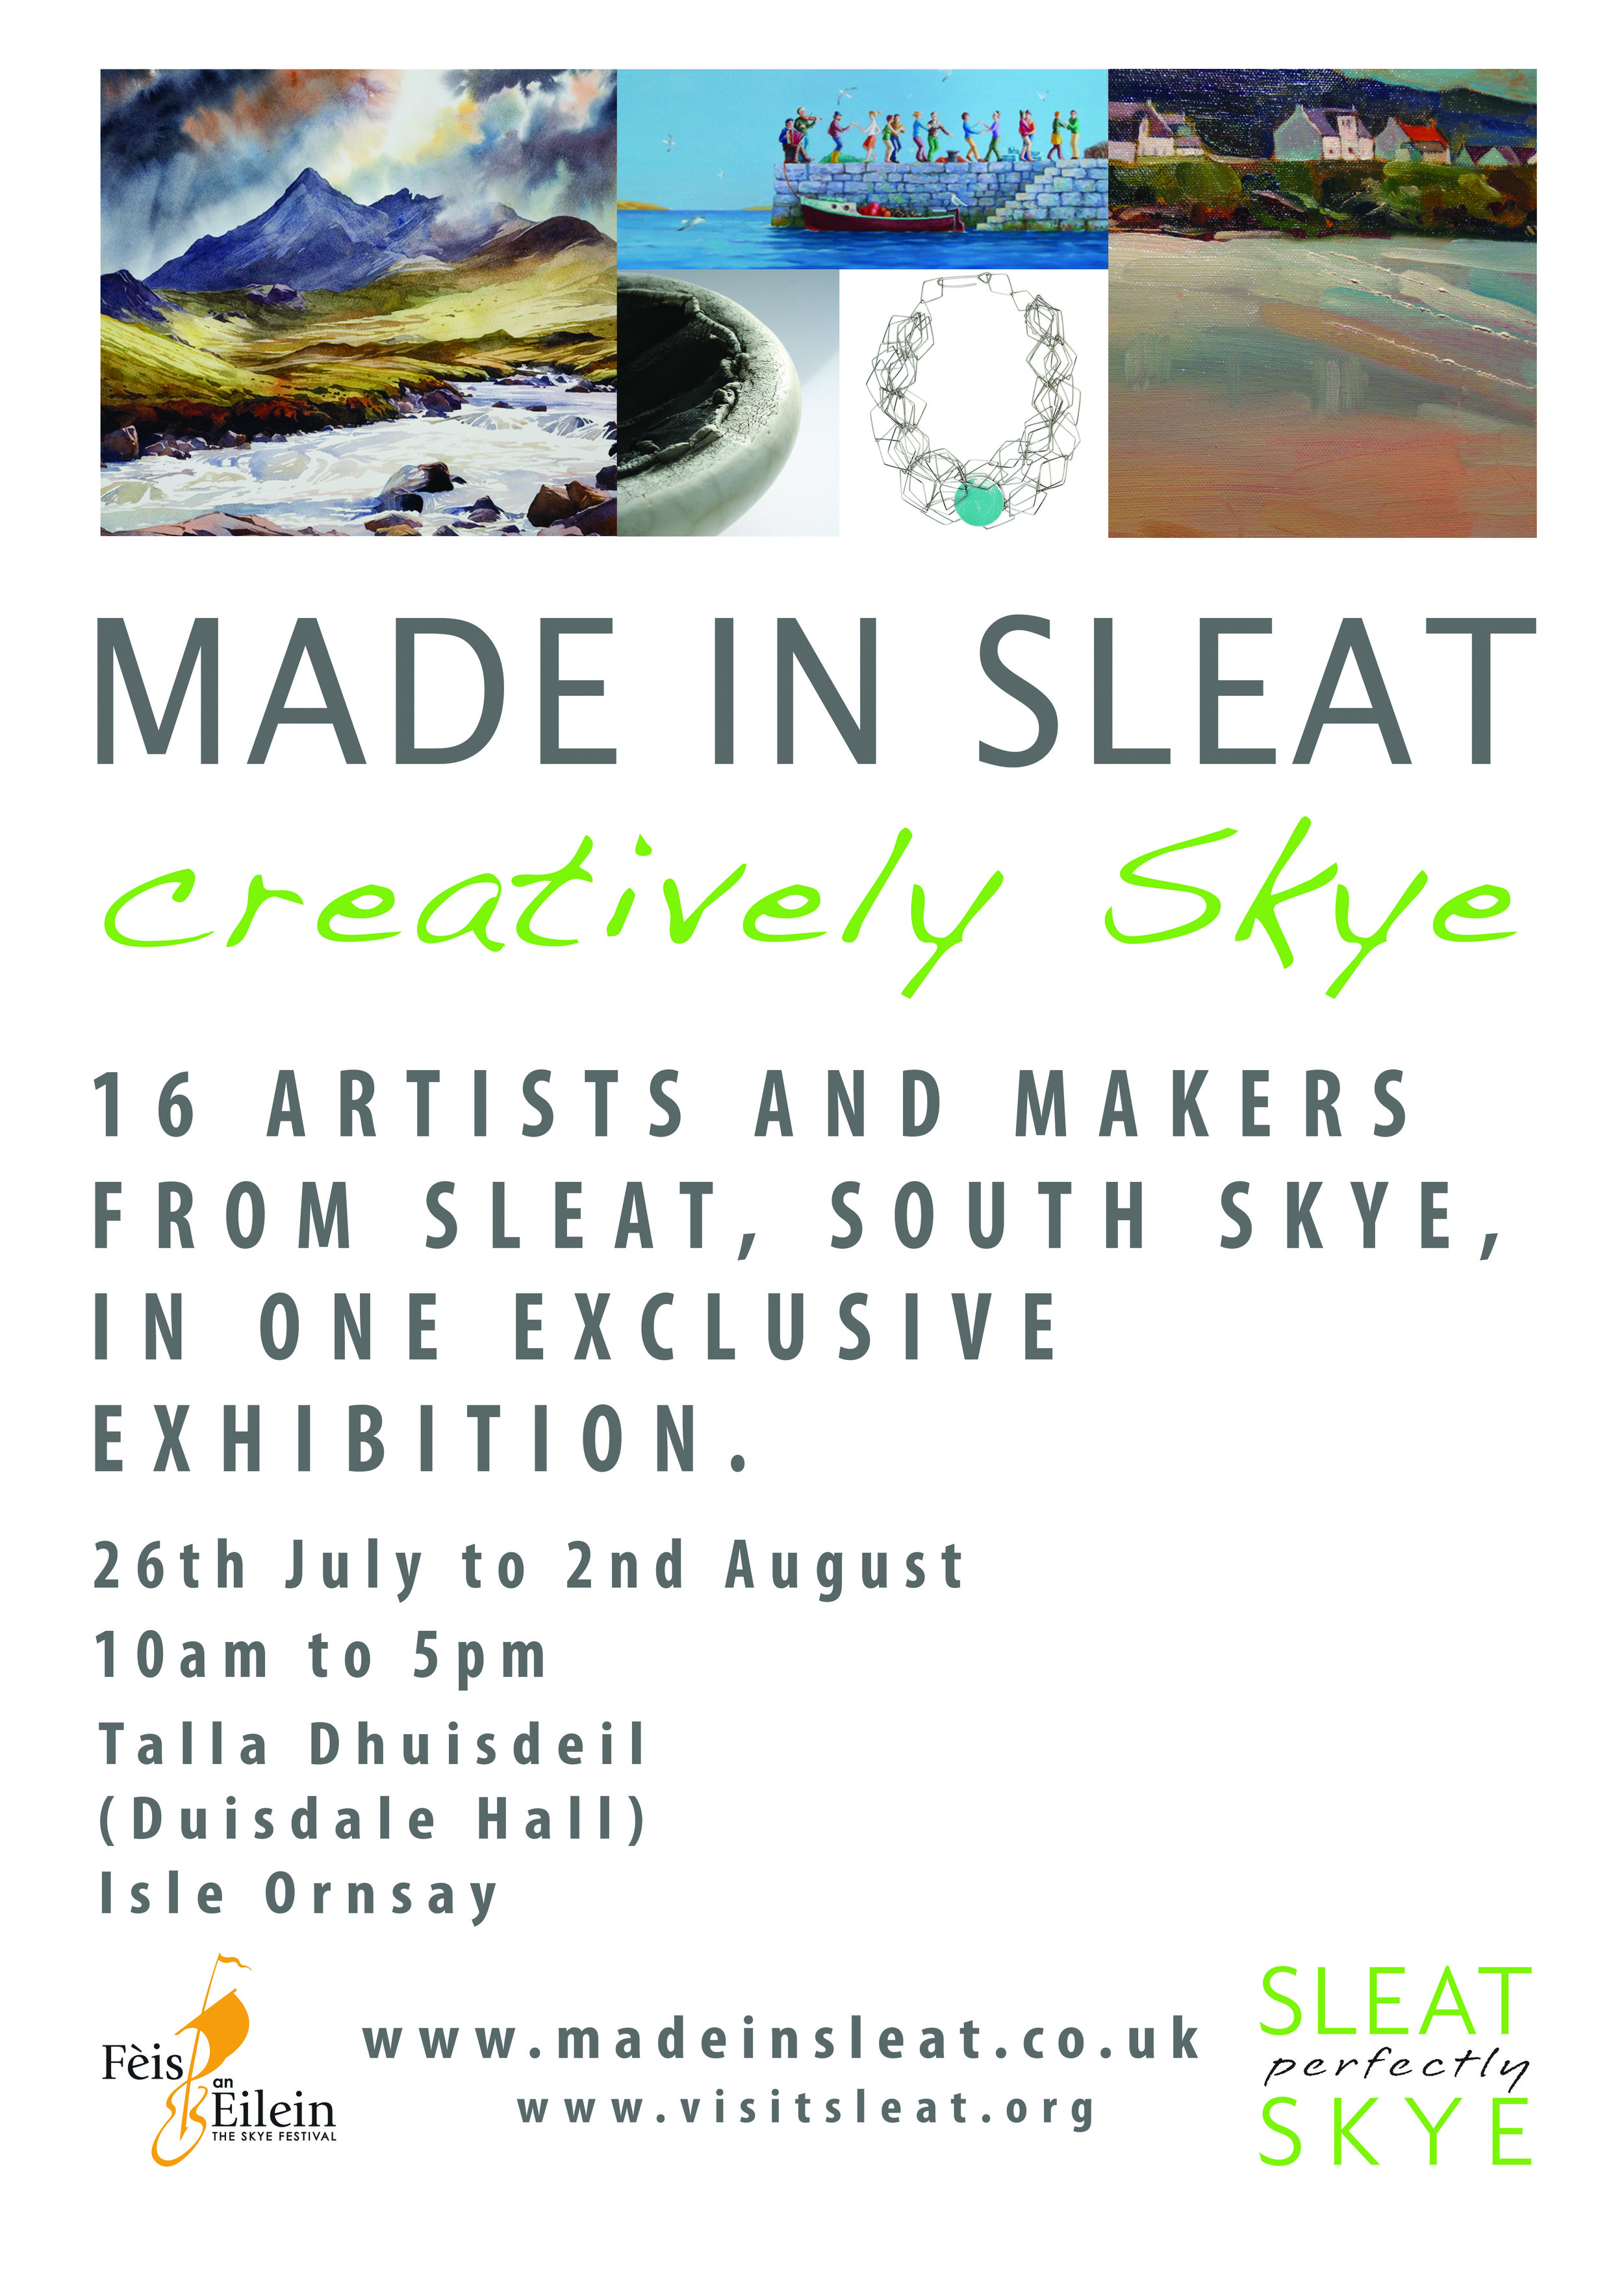 Made in Sleat leaflet